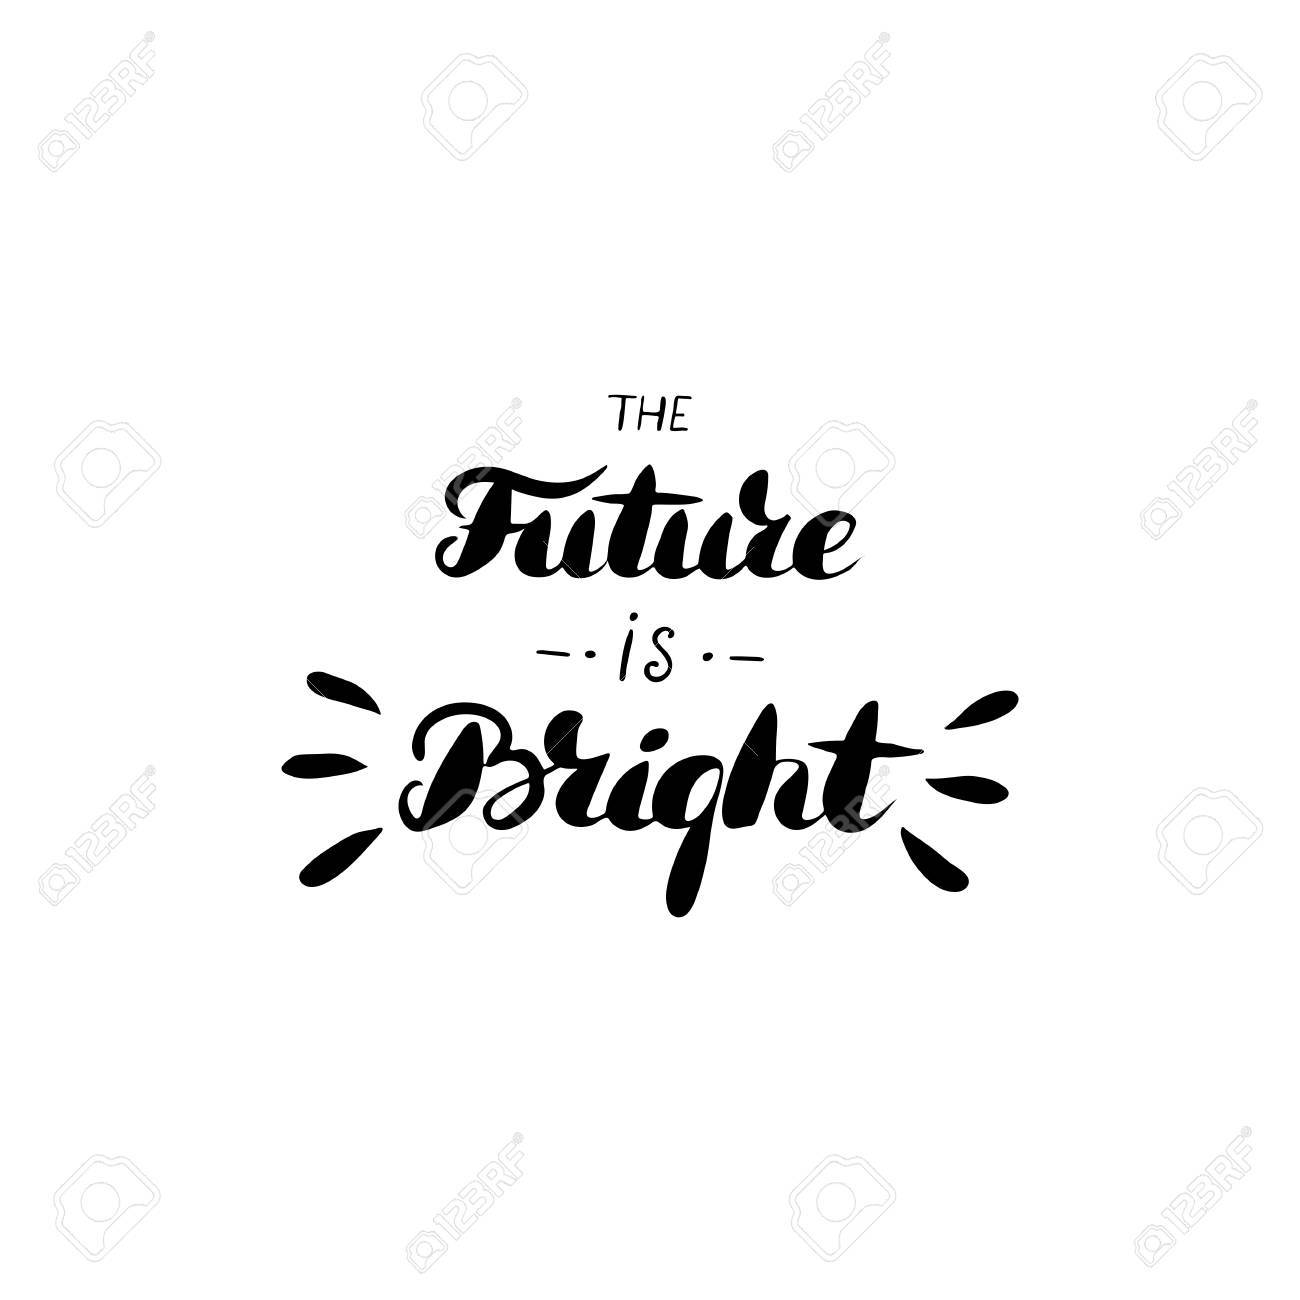 The Future Is Bright   Hand Drawn Inspiration Quote Isolated On White  Background. Stock Vector